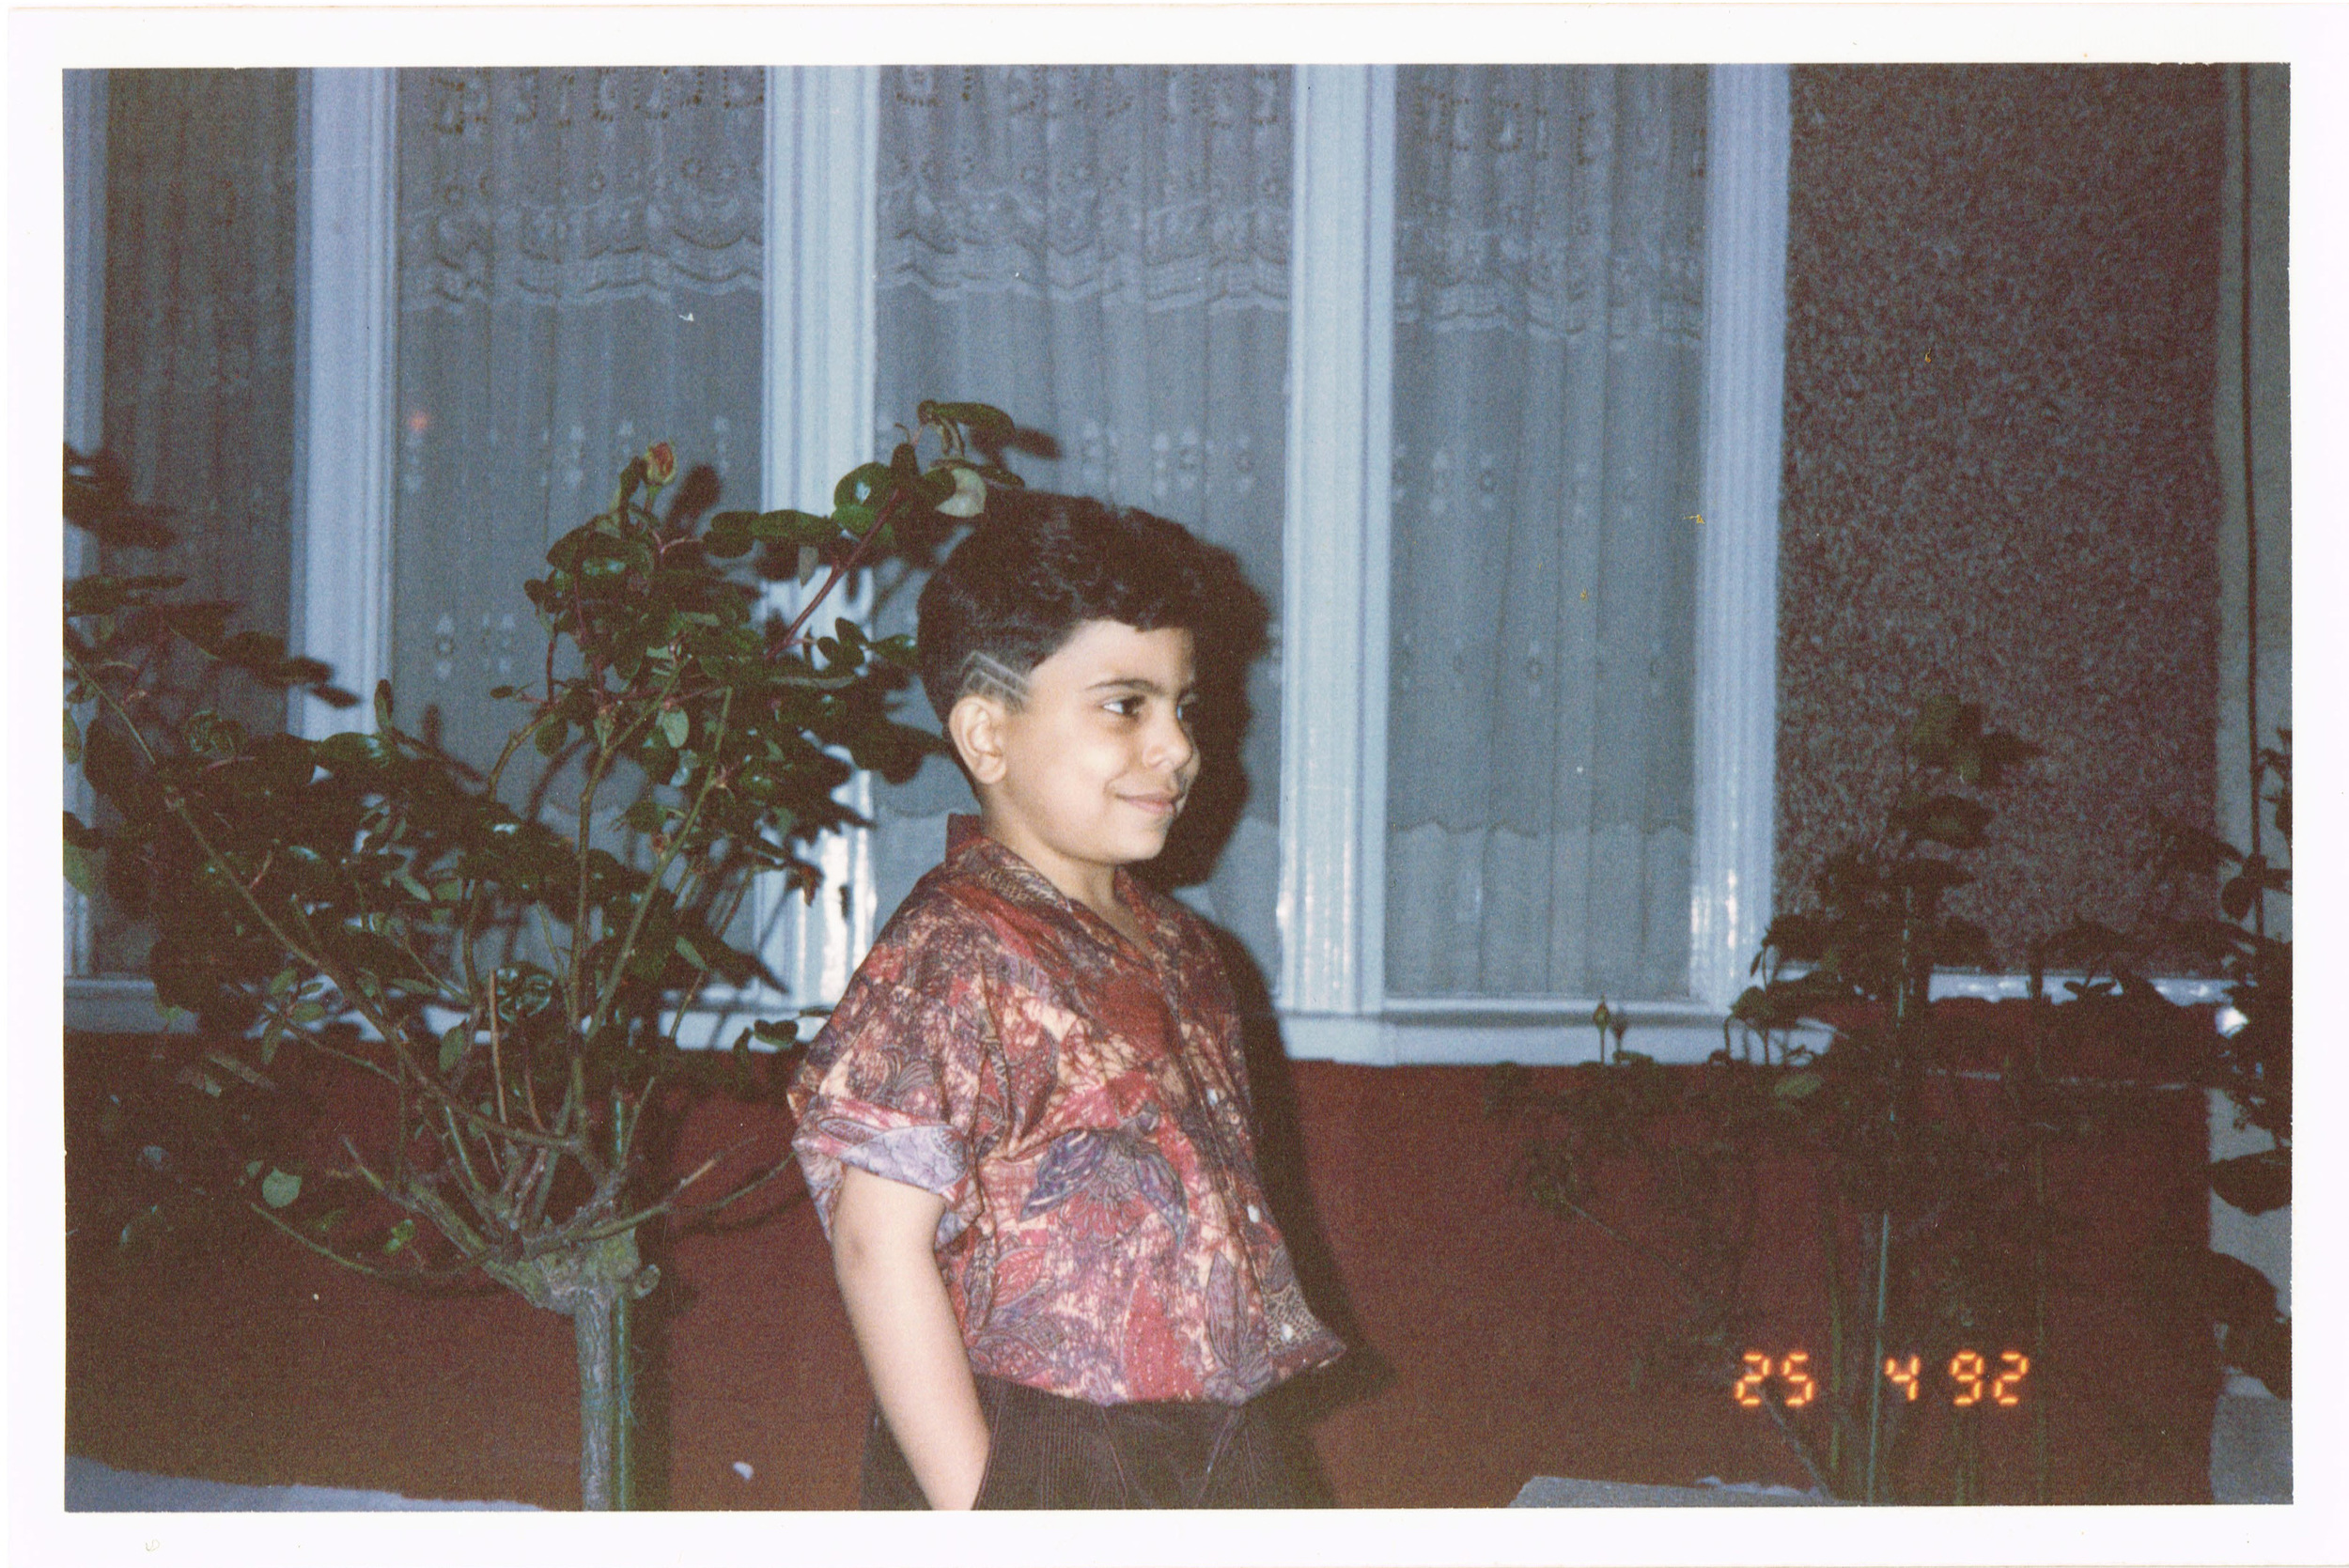 That phase when having zigzag haircuts was cool! I still roll my sleeves tho:)